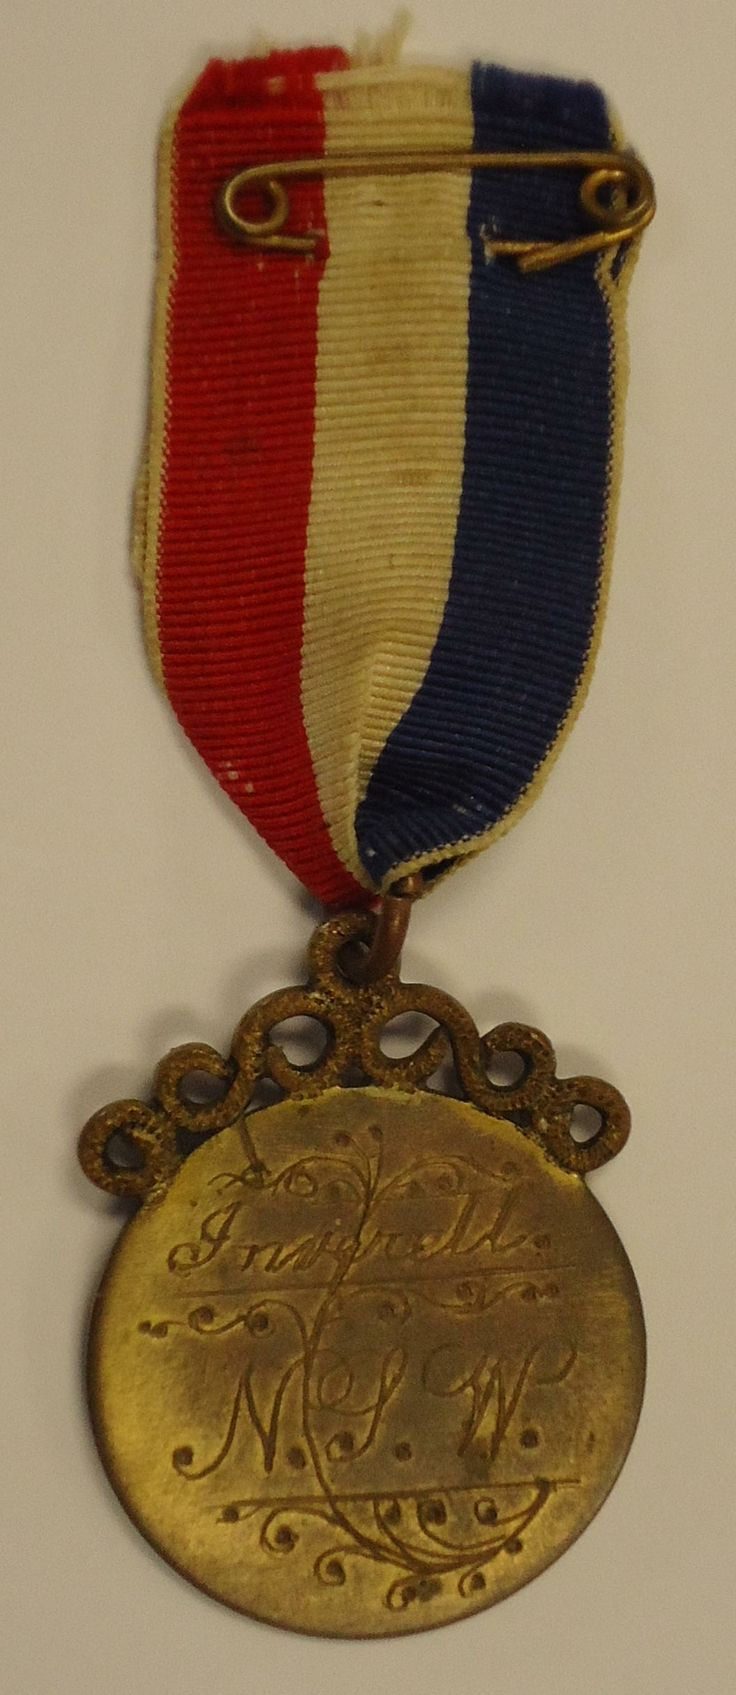 The Inverell Medal, given to volunteers when they left the district to serve during the First World War. The volunteer's name is engraved on one side, with date of departure.   The reverse is engraved with the words Inverell NSW